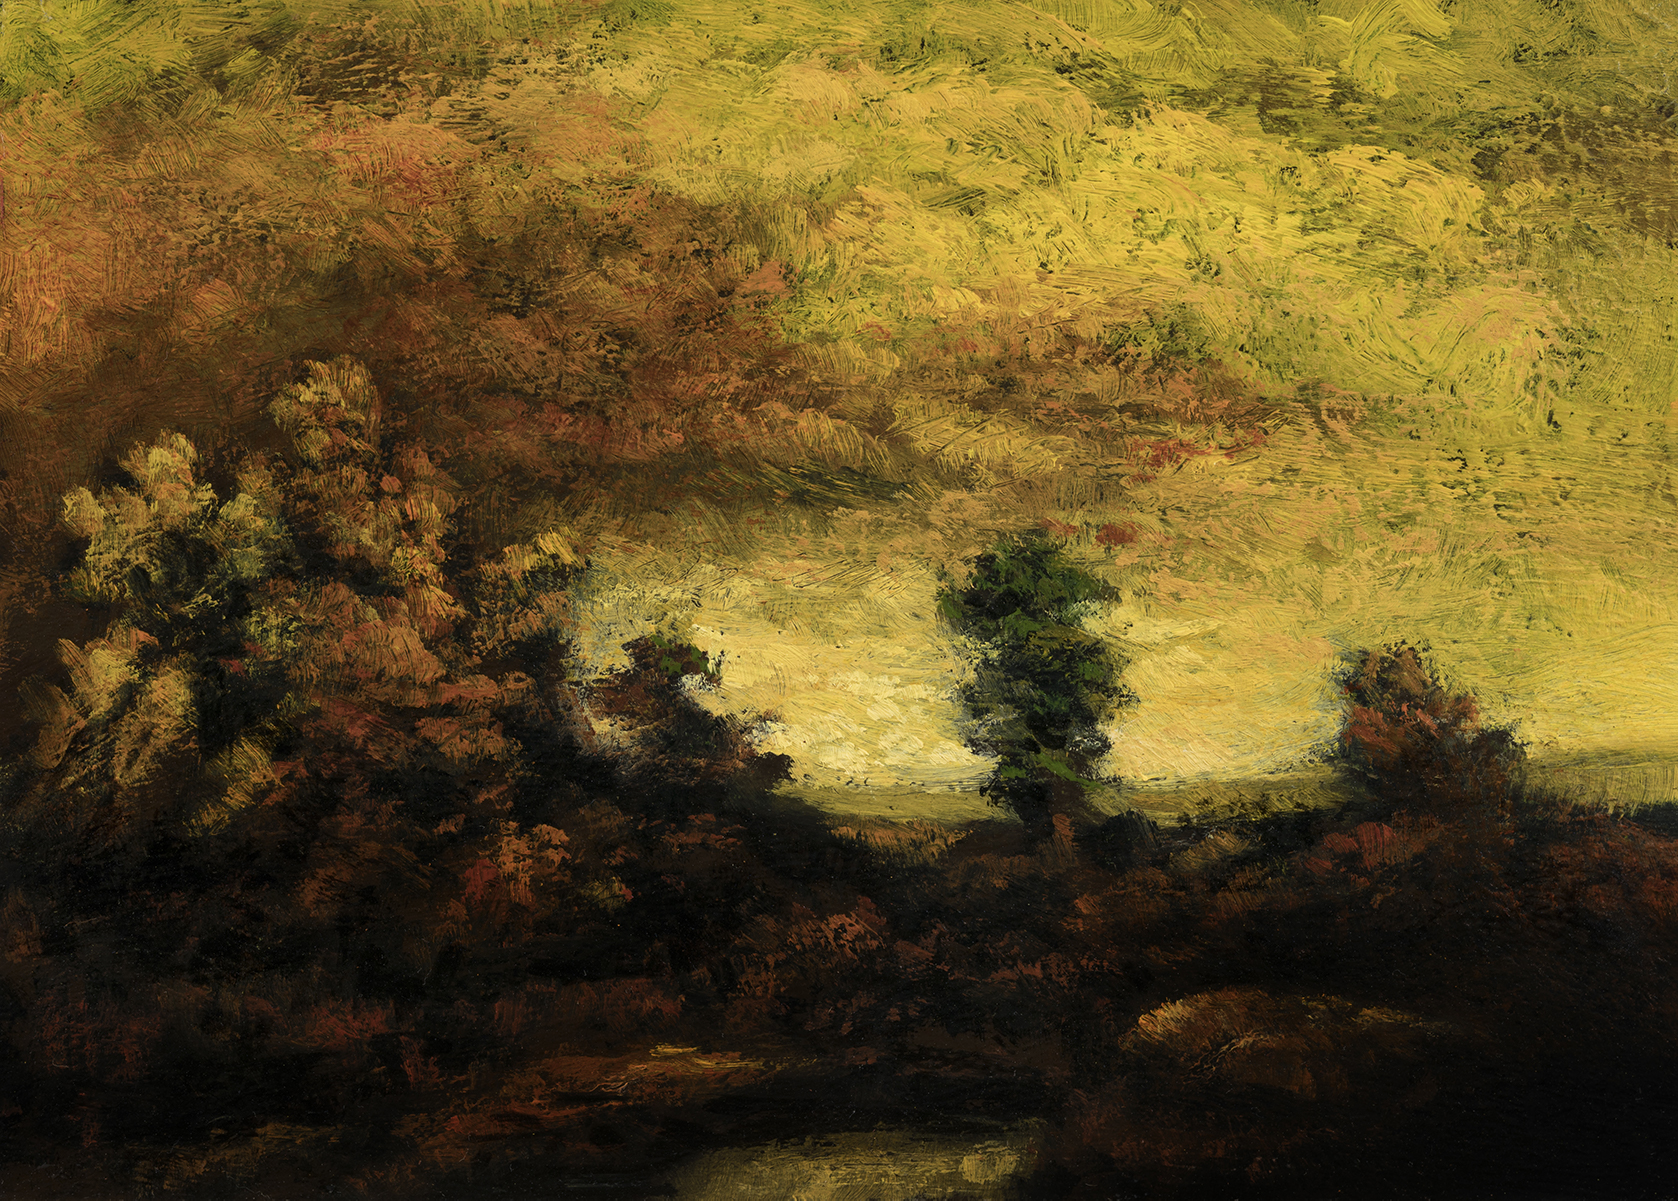 Study after: Ralph Albert Blakelock A Mountain Road by M Francis McCarthy - 5x7 Oil on Wood Panel